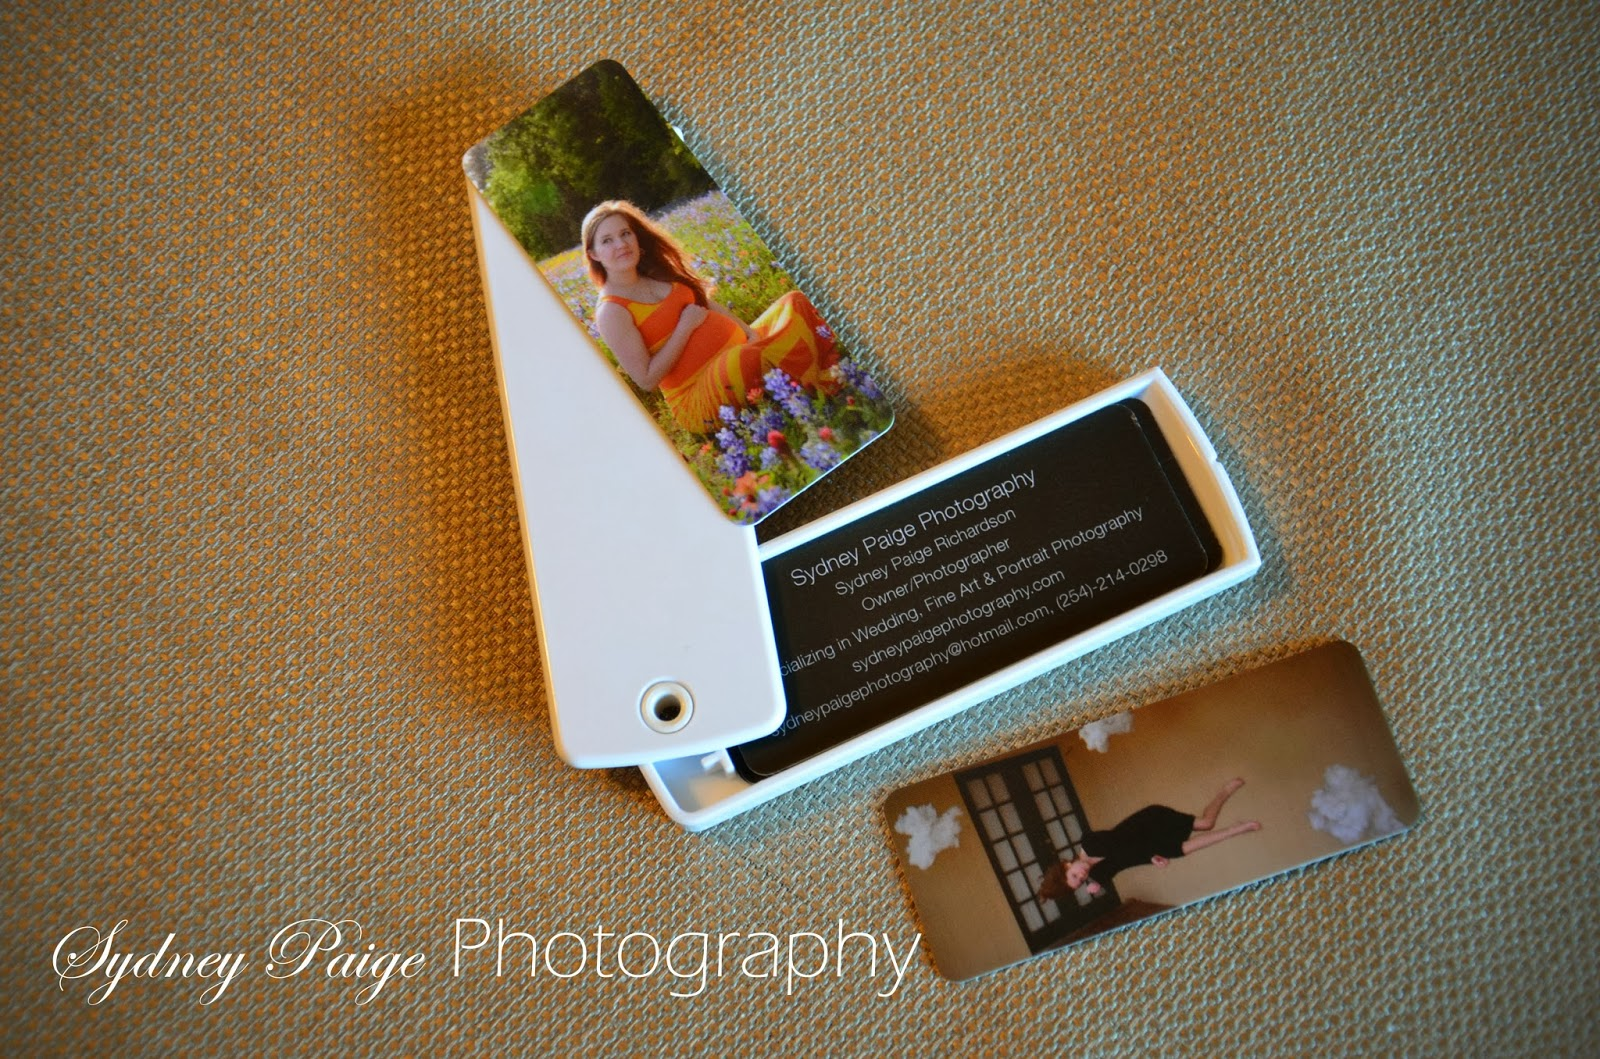 Sydney Paige Photography Blog: Review - Business Cards - moo.com!